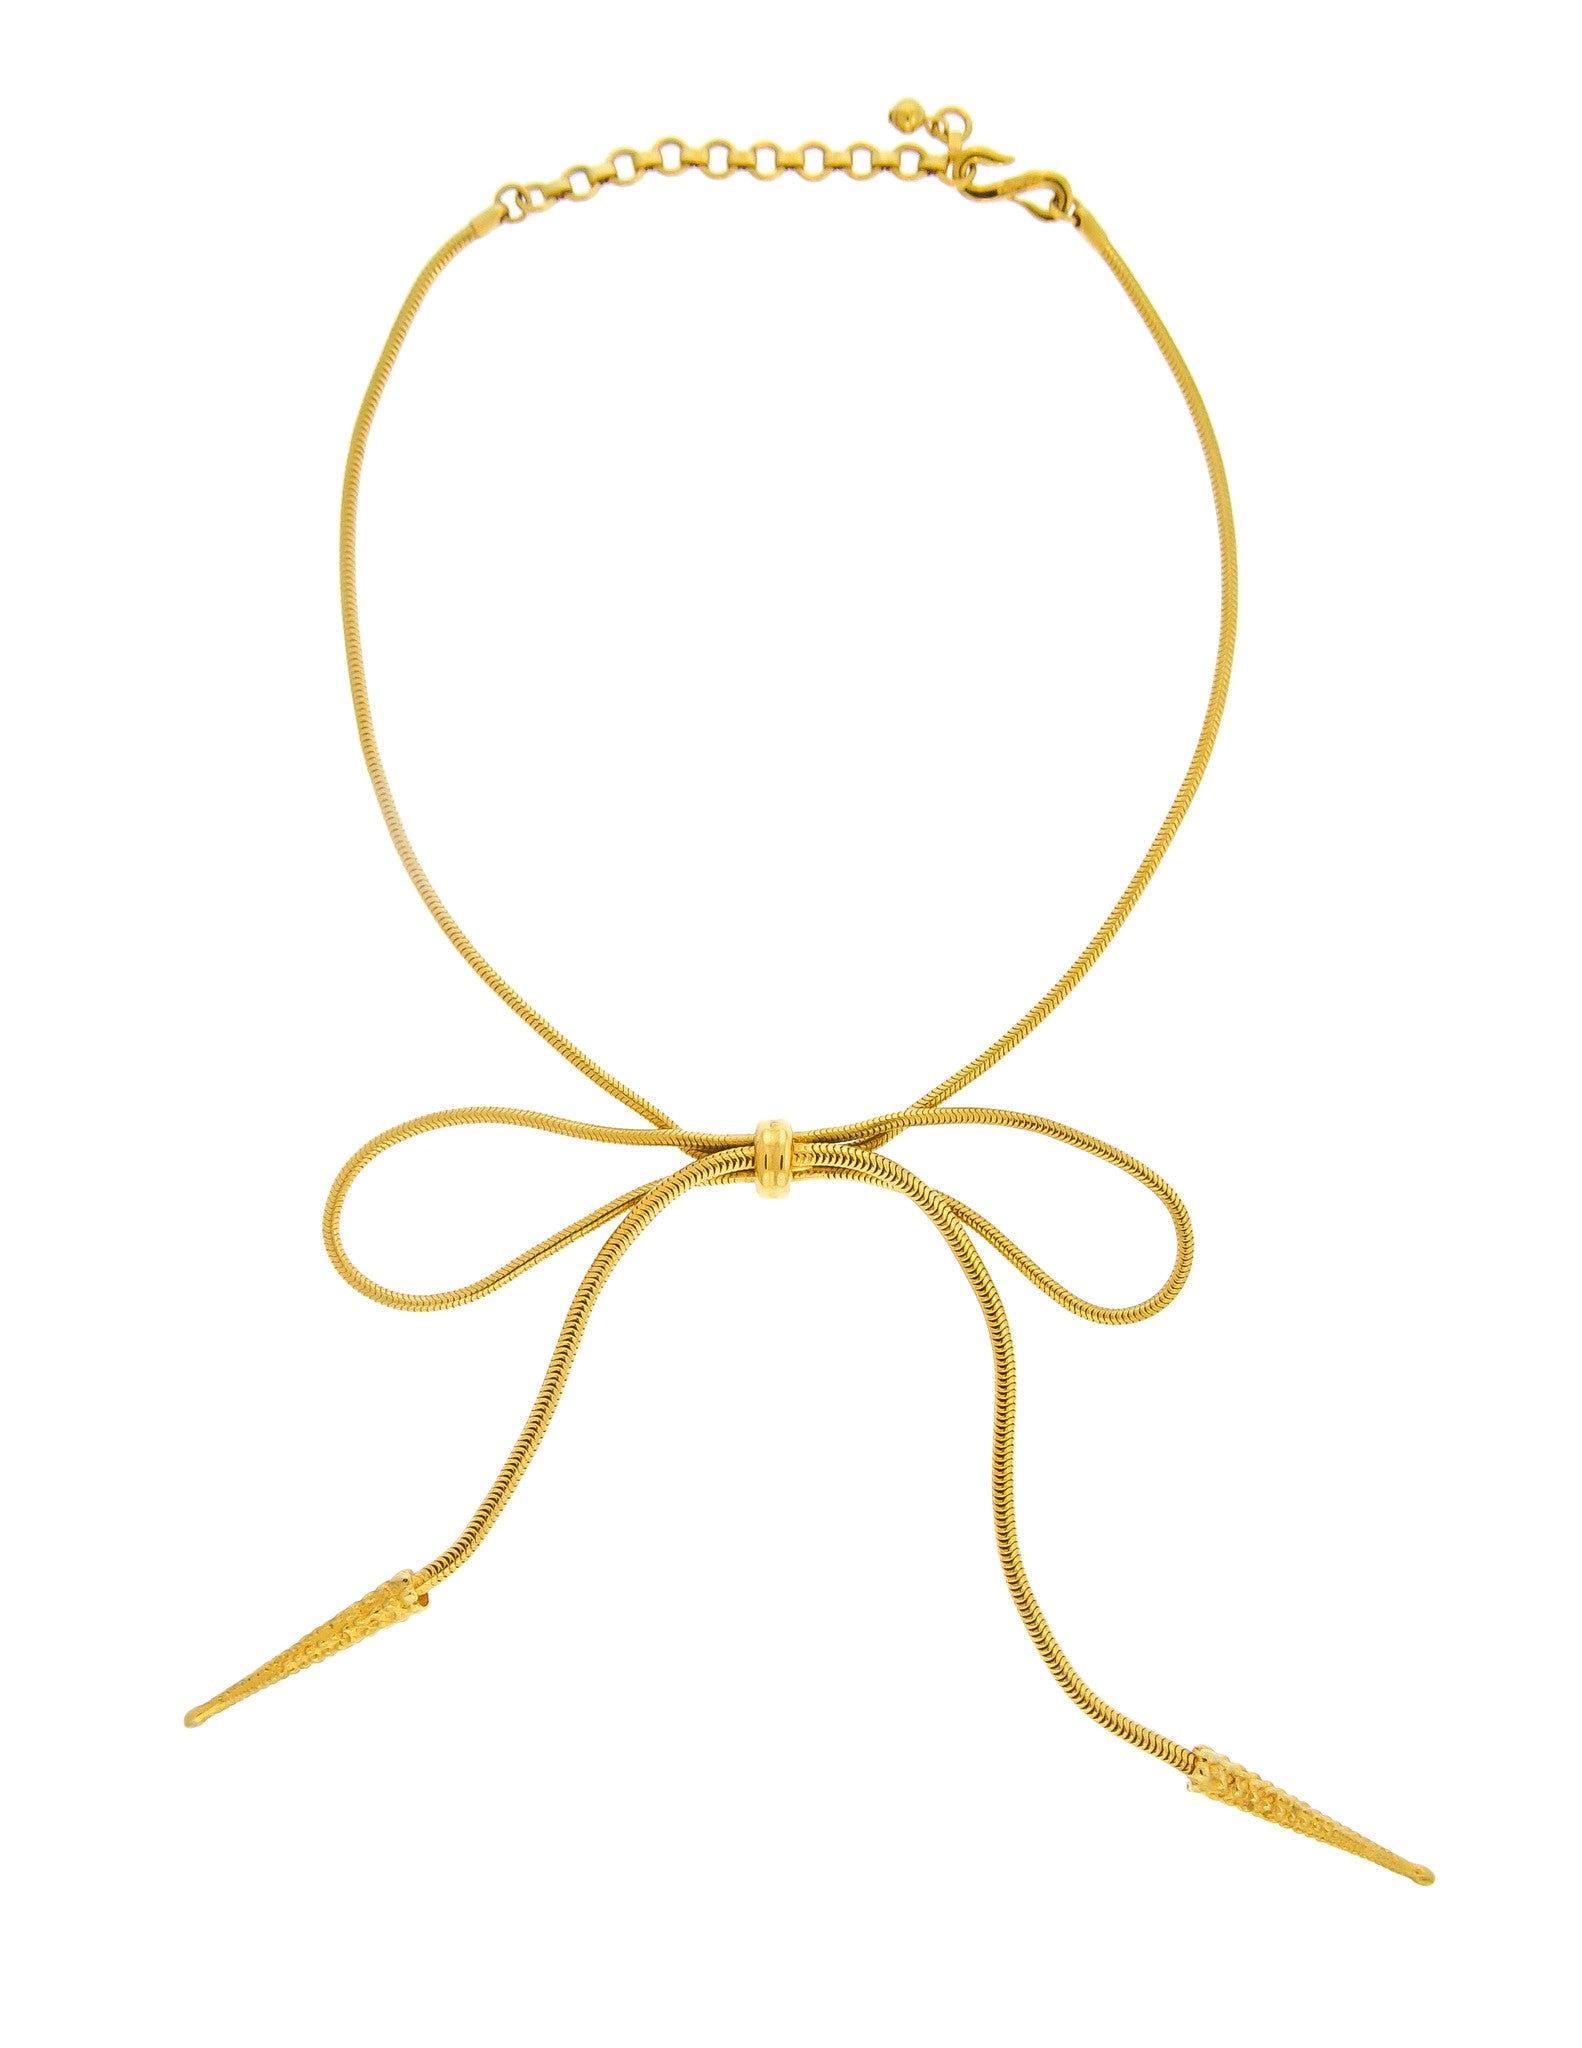 Yves Saint Laurent Vintage Gold Bow Necklace - Amarcord Vintage Fashion  - 1